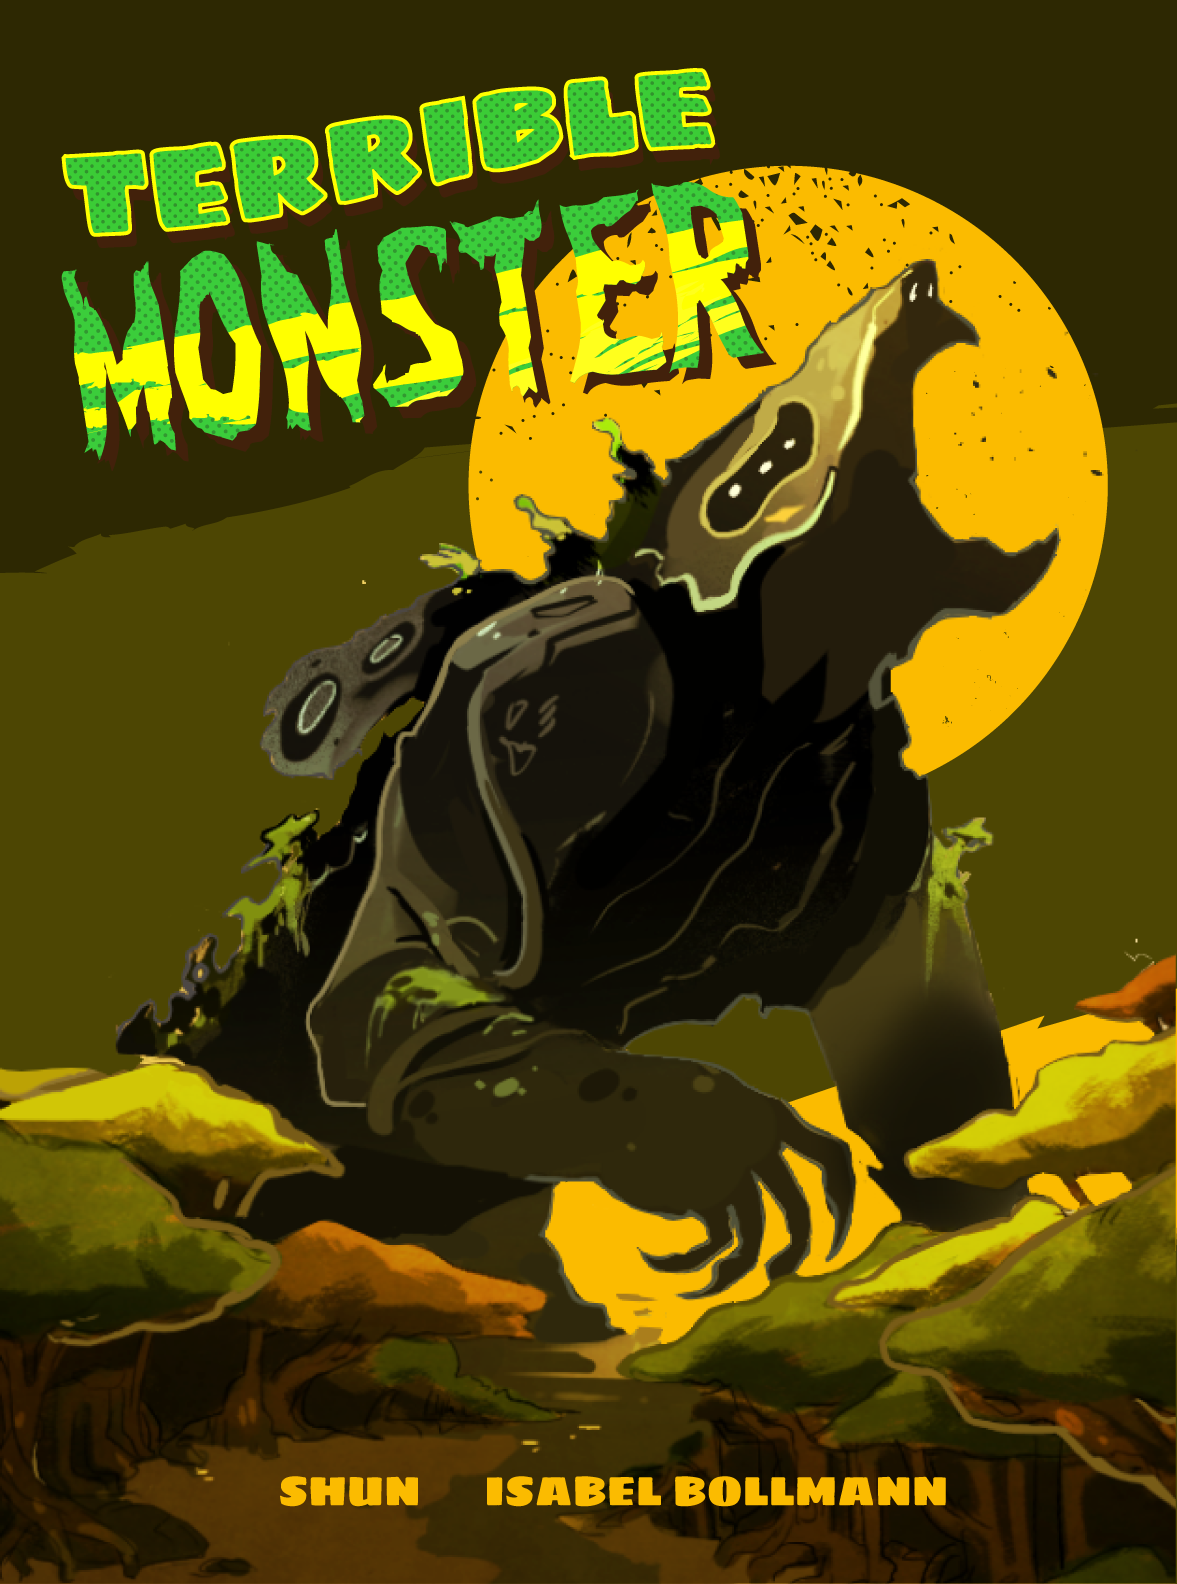 Terrible Monster Card Game Overview